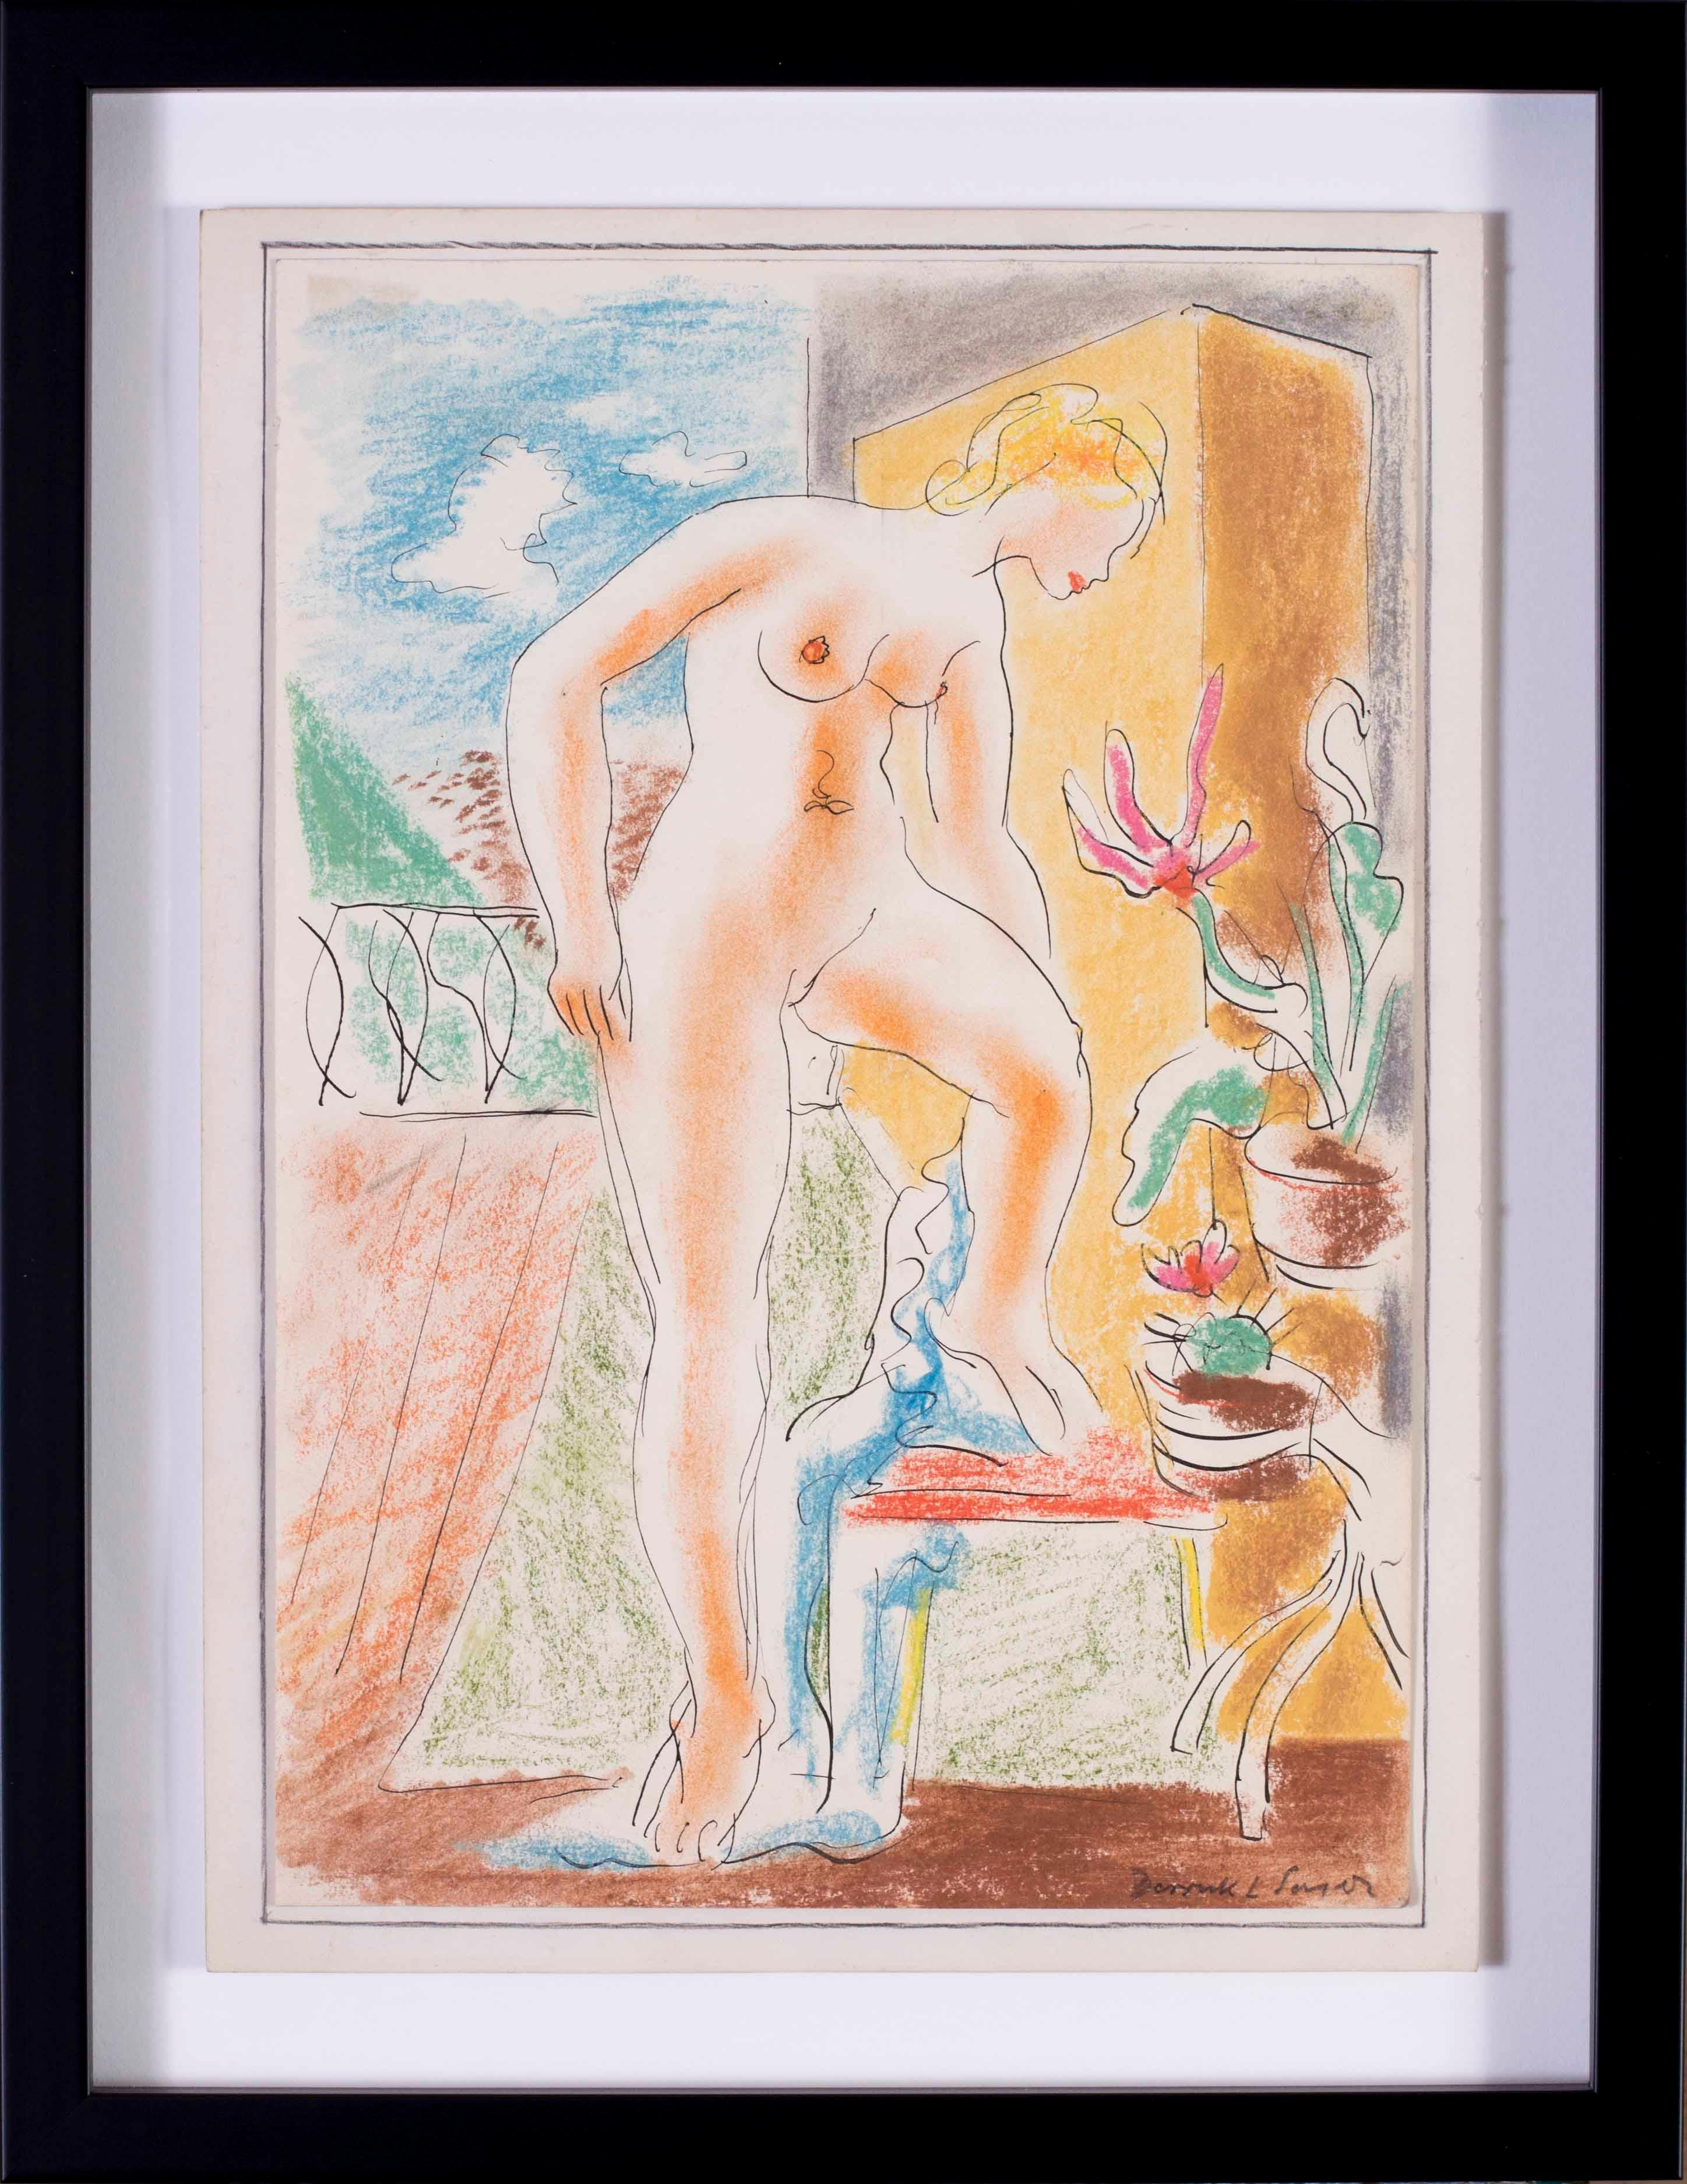 British Mid 20th Century ink and pastel on paper drawing of a bather, nude